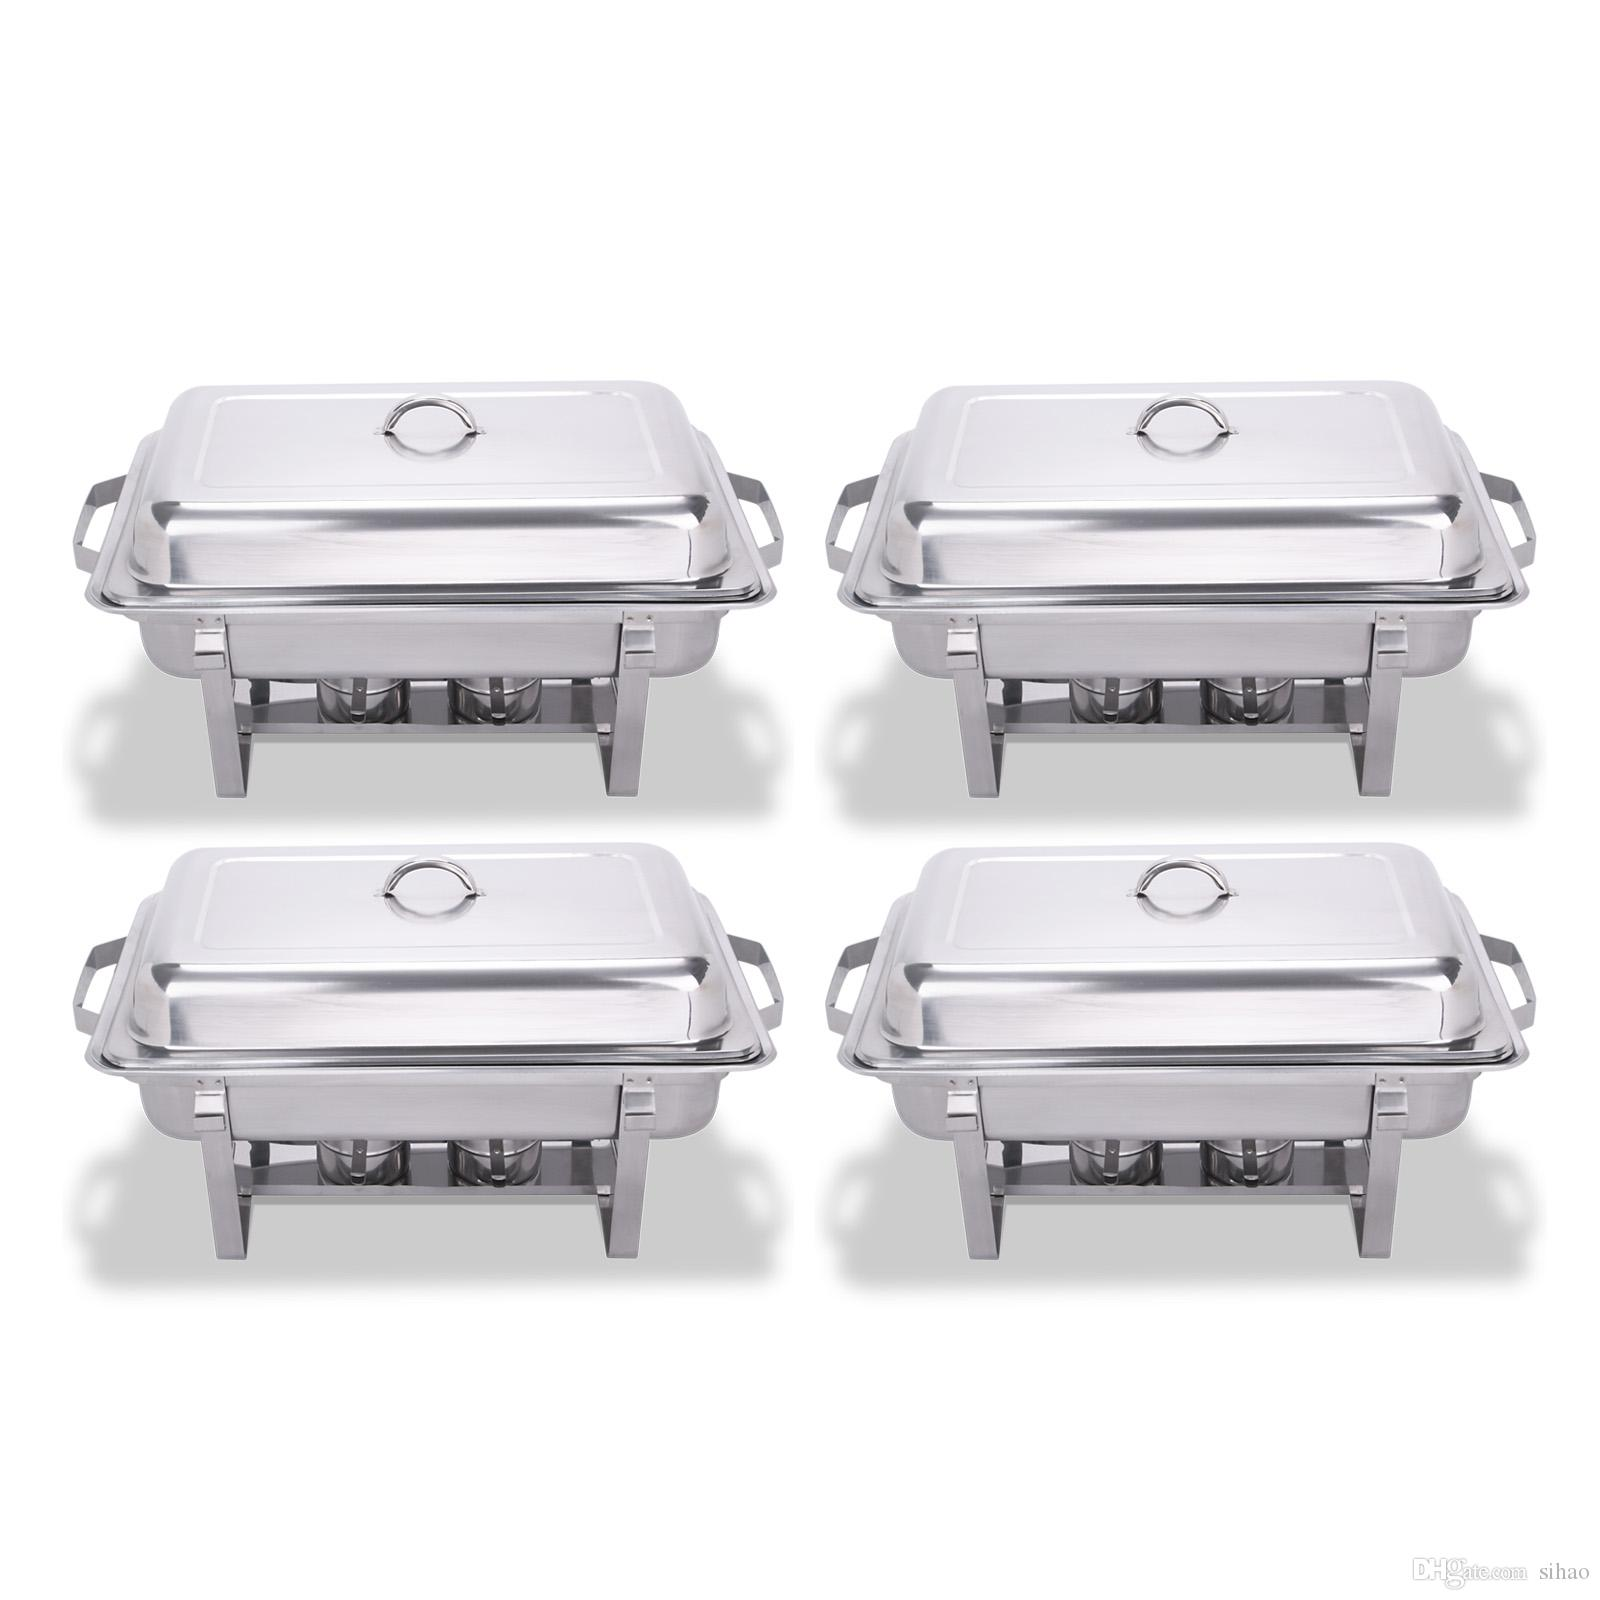 2019 4 Pack 8 Quart Stainless Steel Folding Chafer Rectangular Chafing Dish Sets From Sihao 11056